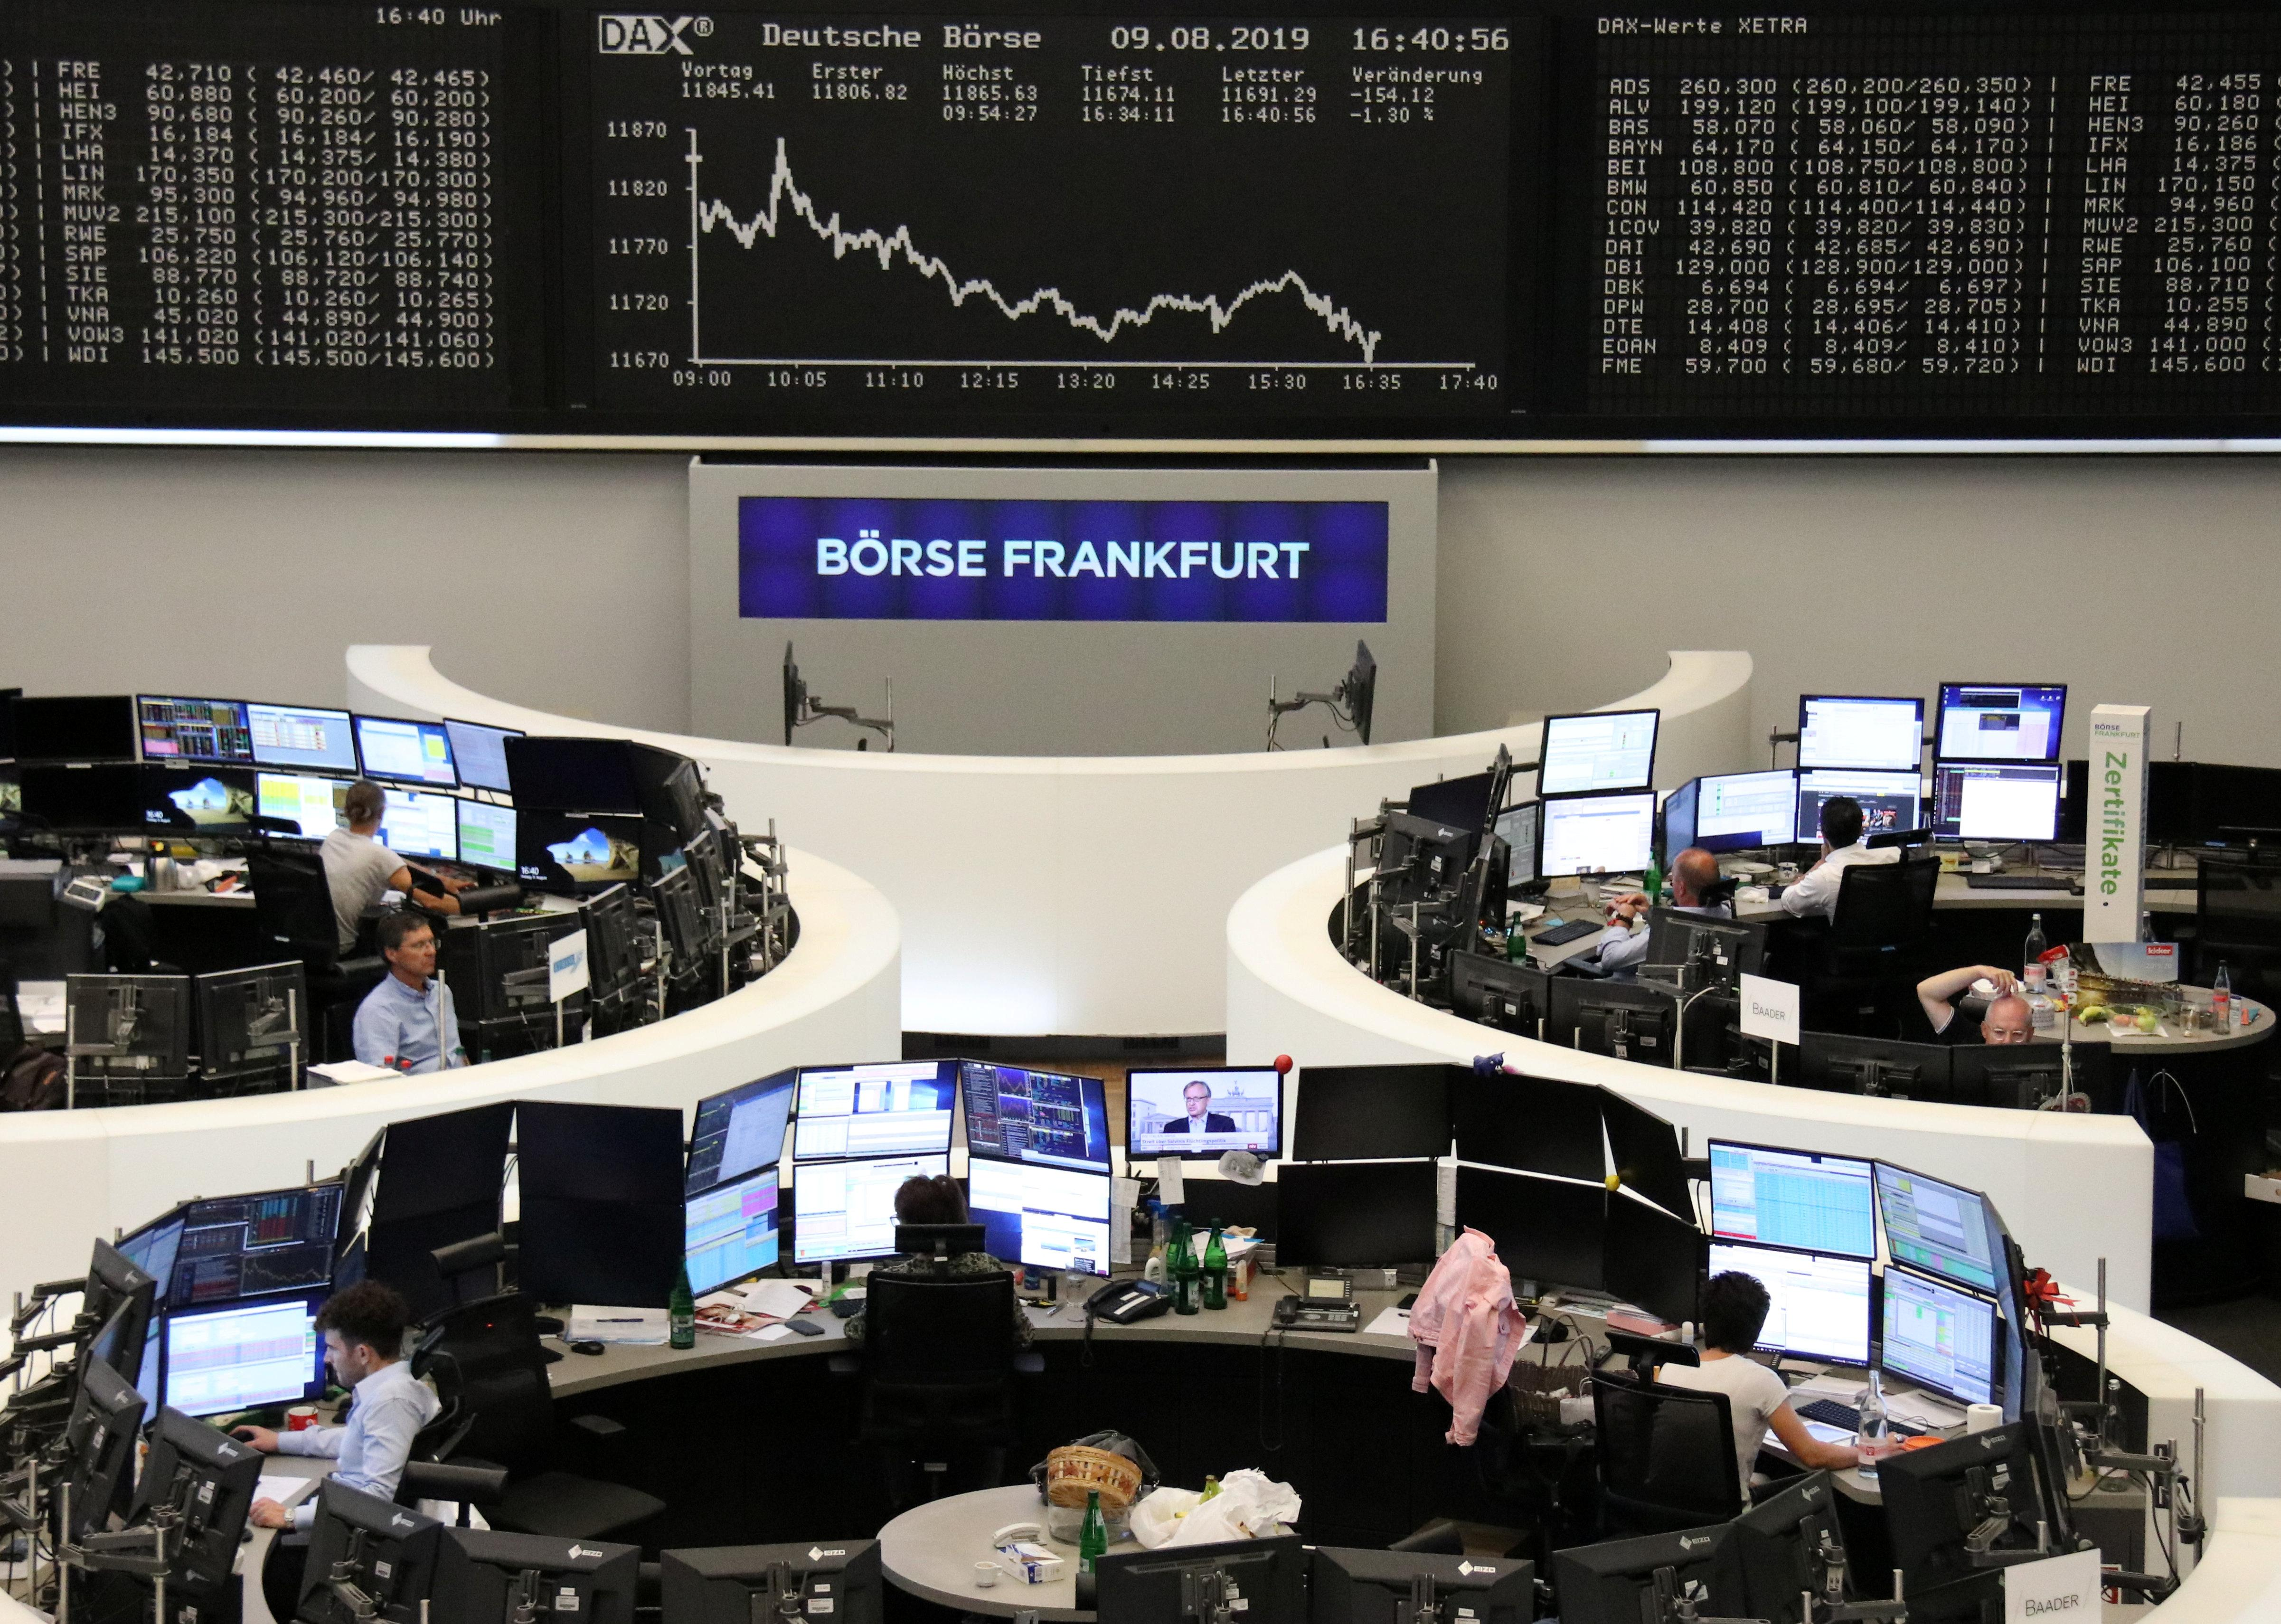 Italy leads European shares lower on political uncertainty